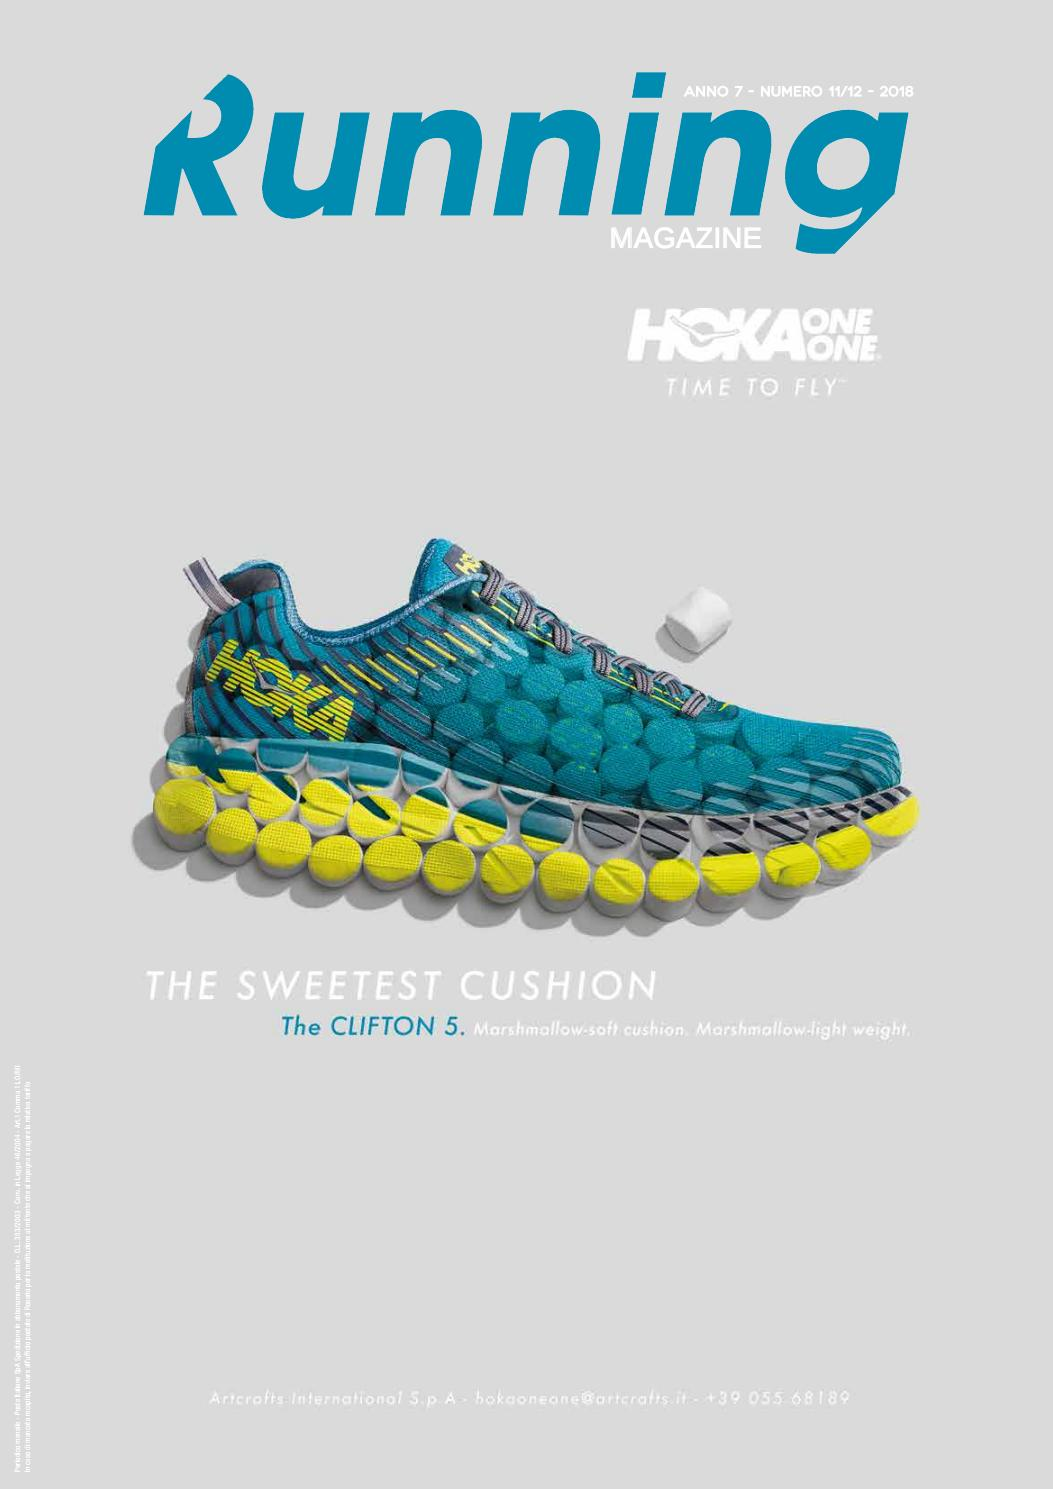 Running Mag 1112 2018 by Sport Press issuu